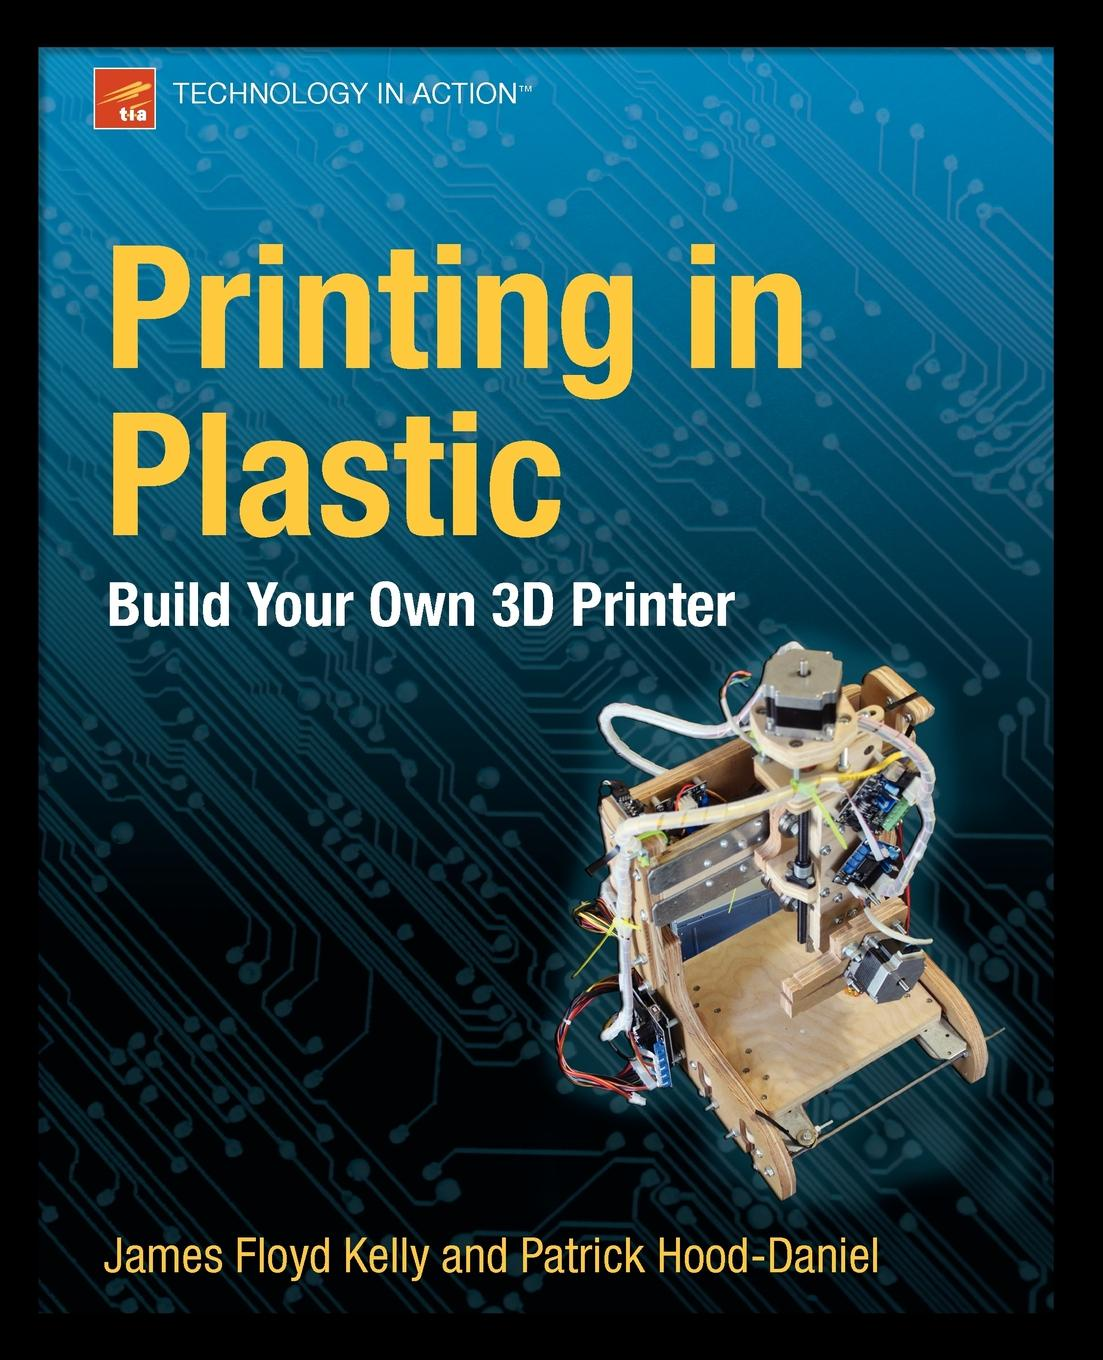 James Floyd Kelly, Patrick Hood-Daniel Printing in Plastic. Build Your Own 3D Printer for mettler toledo tiger 8442 aaa disassemble tools free shipping printer part printhead printing accessories